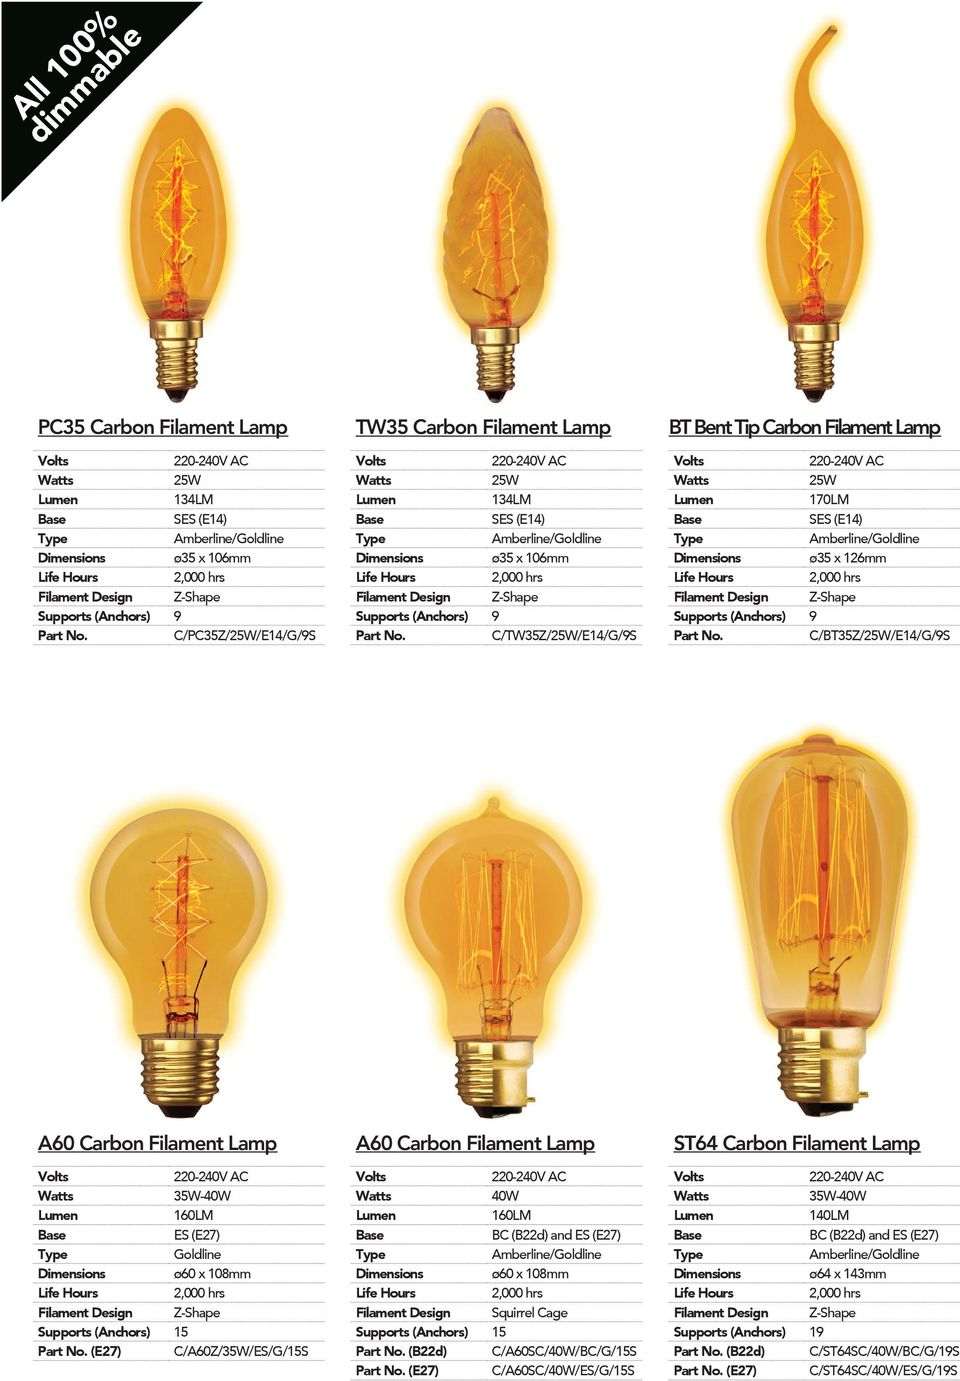 160LM ES (E27) Goldline Dimensions ø60 x 108mm Supports (Anchors) 15 (E27) C/A60Z/35W/ES/G/15S A60 Carbon Filament Lamp 40W 160LM Dimensions ø60 x 108mm Filament Design Squirrel Cage Supports